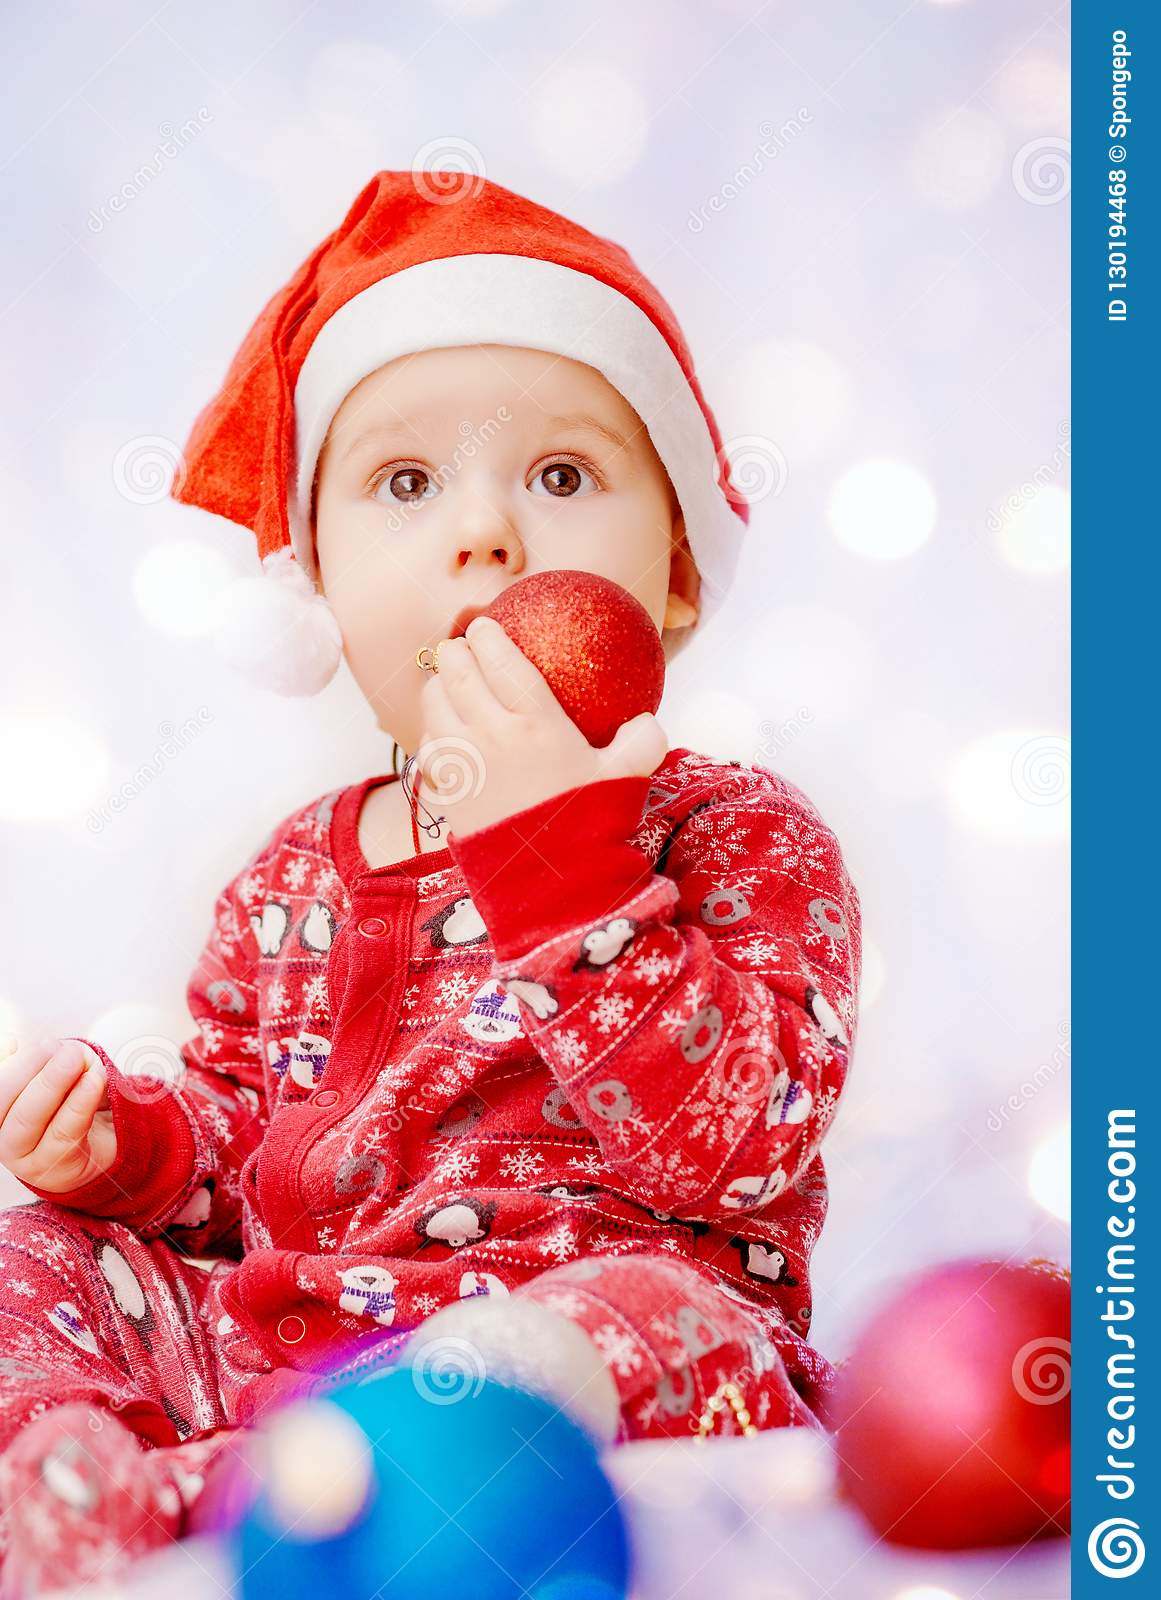 8a968cbf9 Cute Baby In Pajamas And Santa Claus Hat On Christmas Background ...